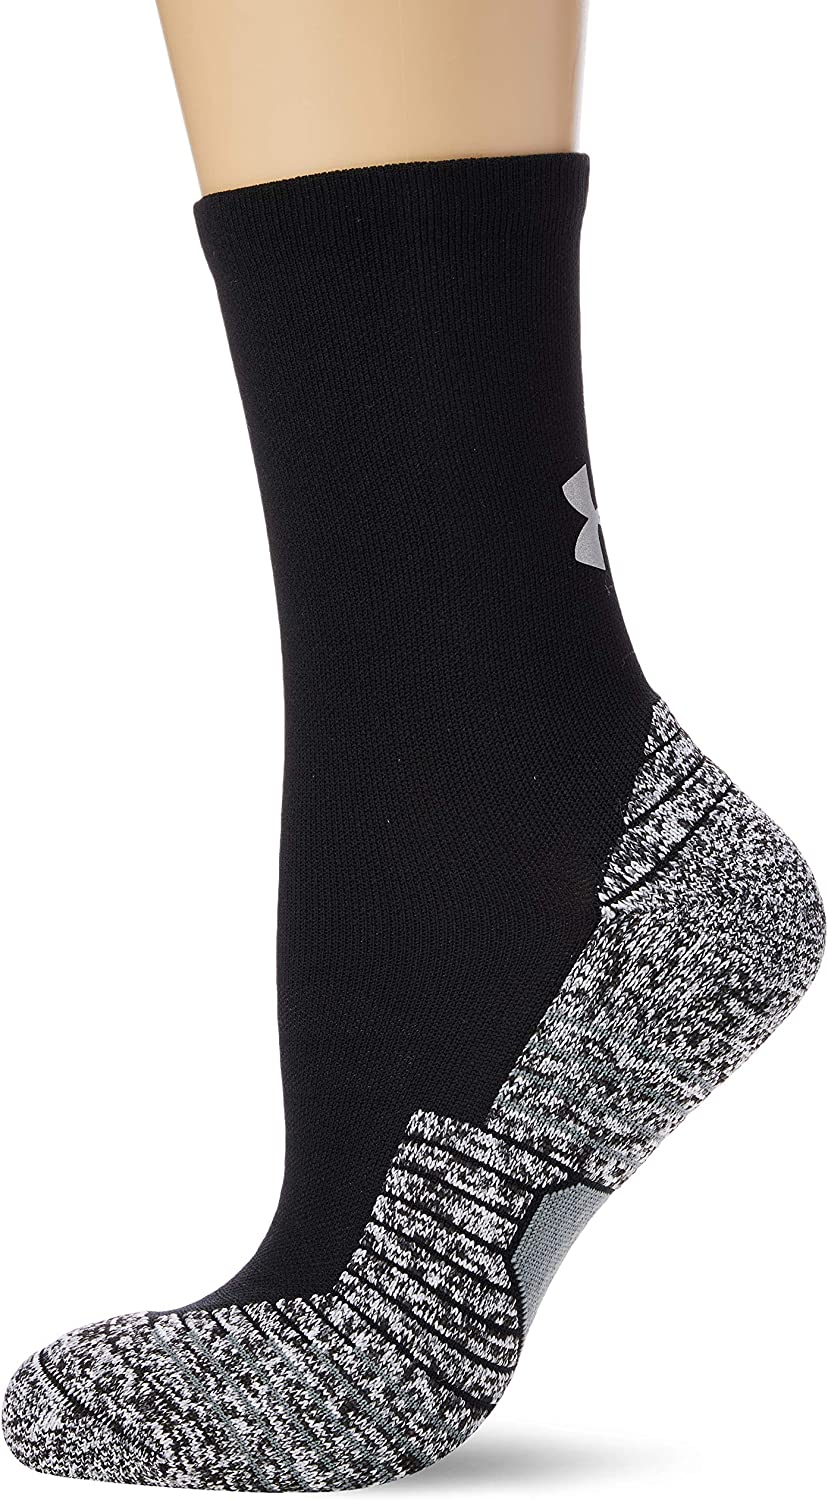 Unisex Adulto Under Armour Playmaker Mid Calcetines Transpirables